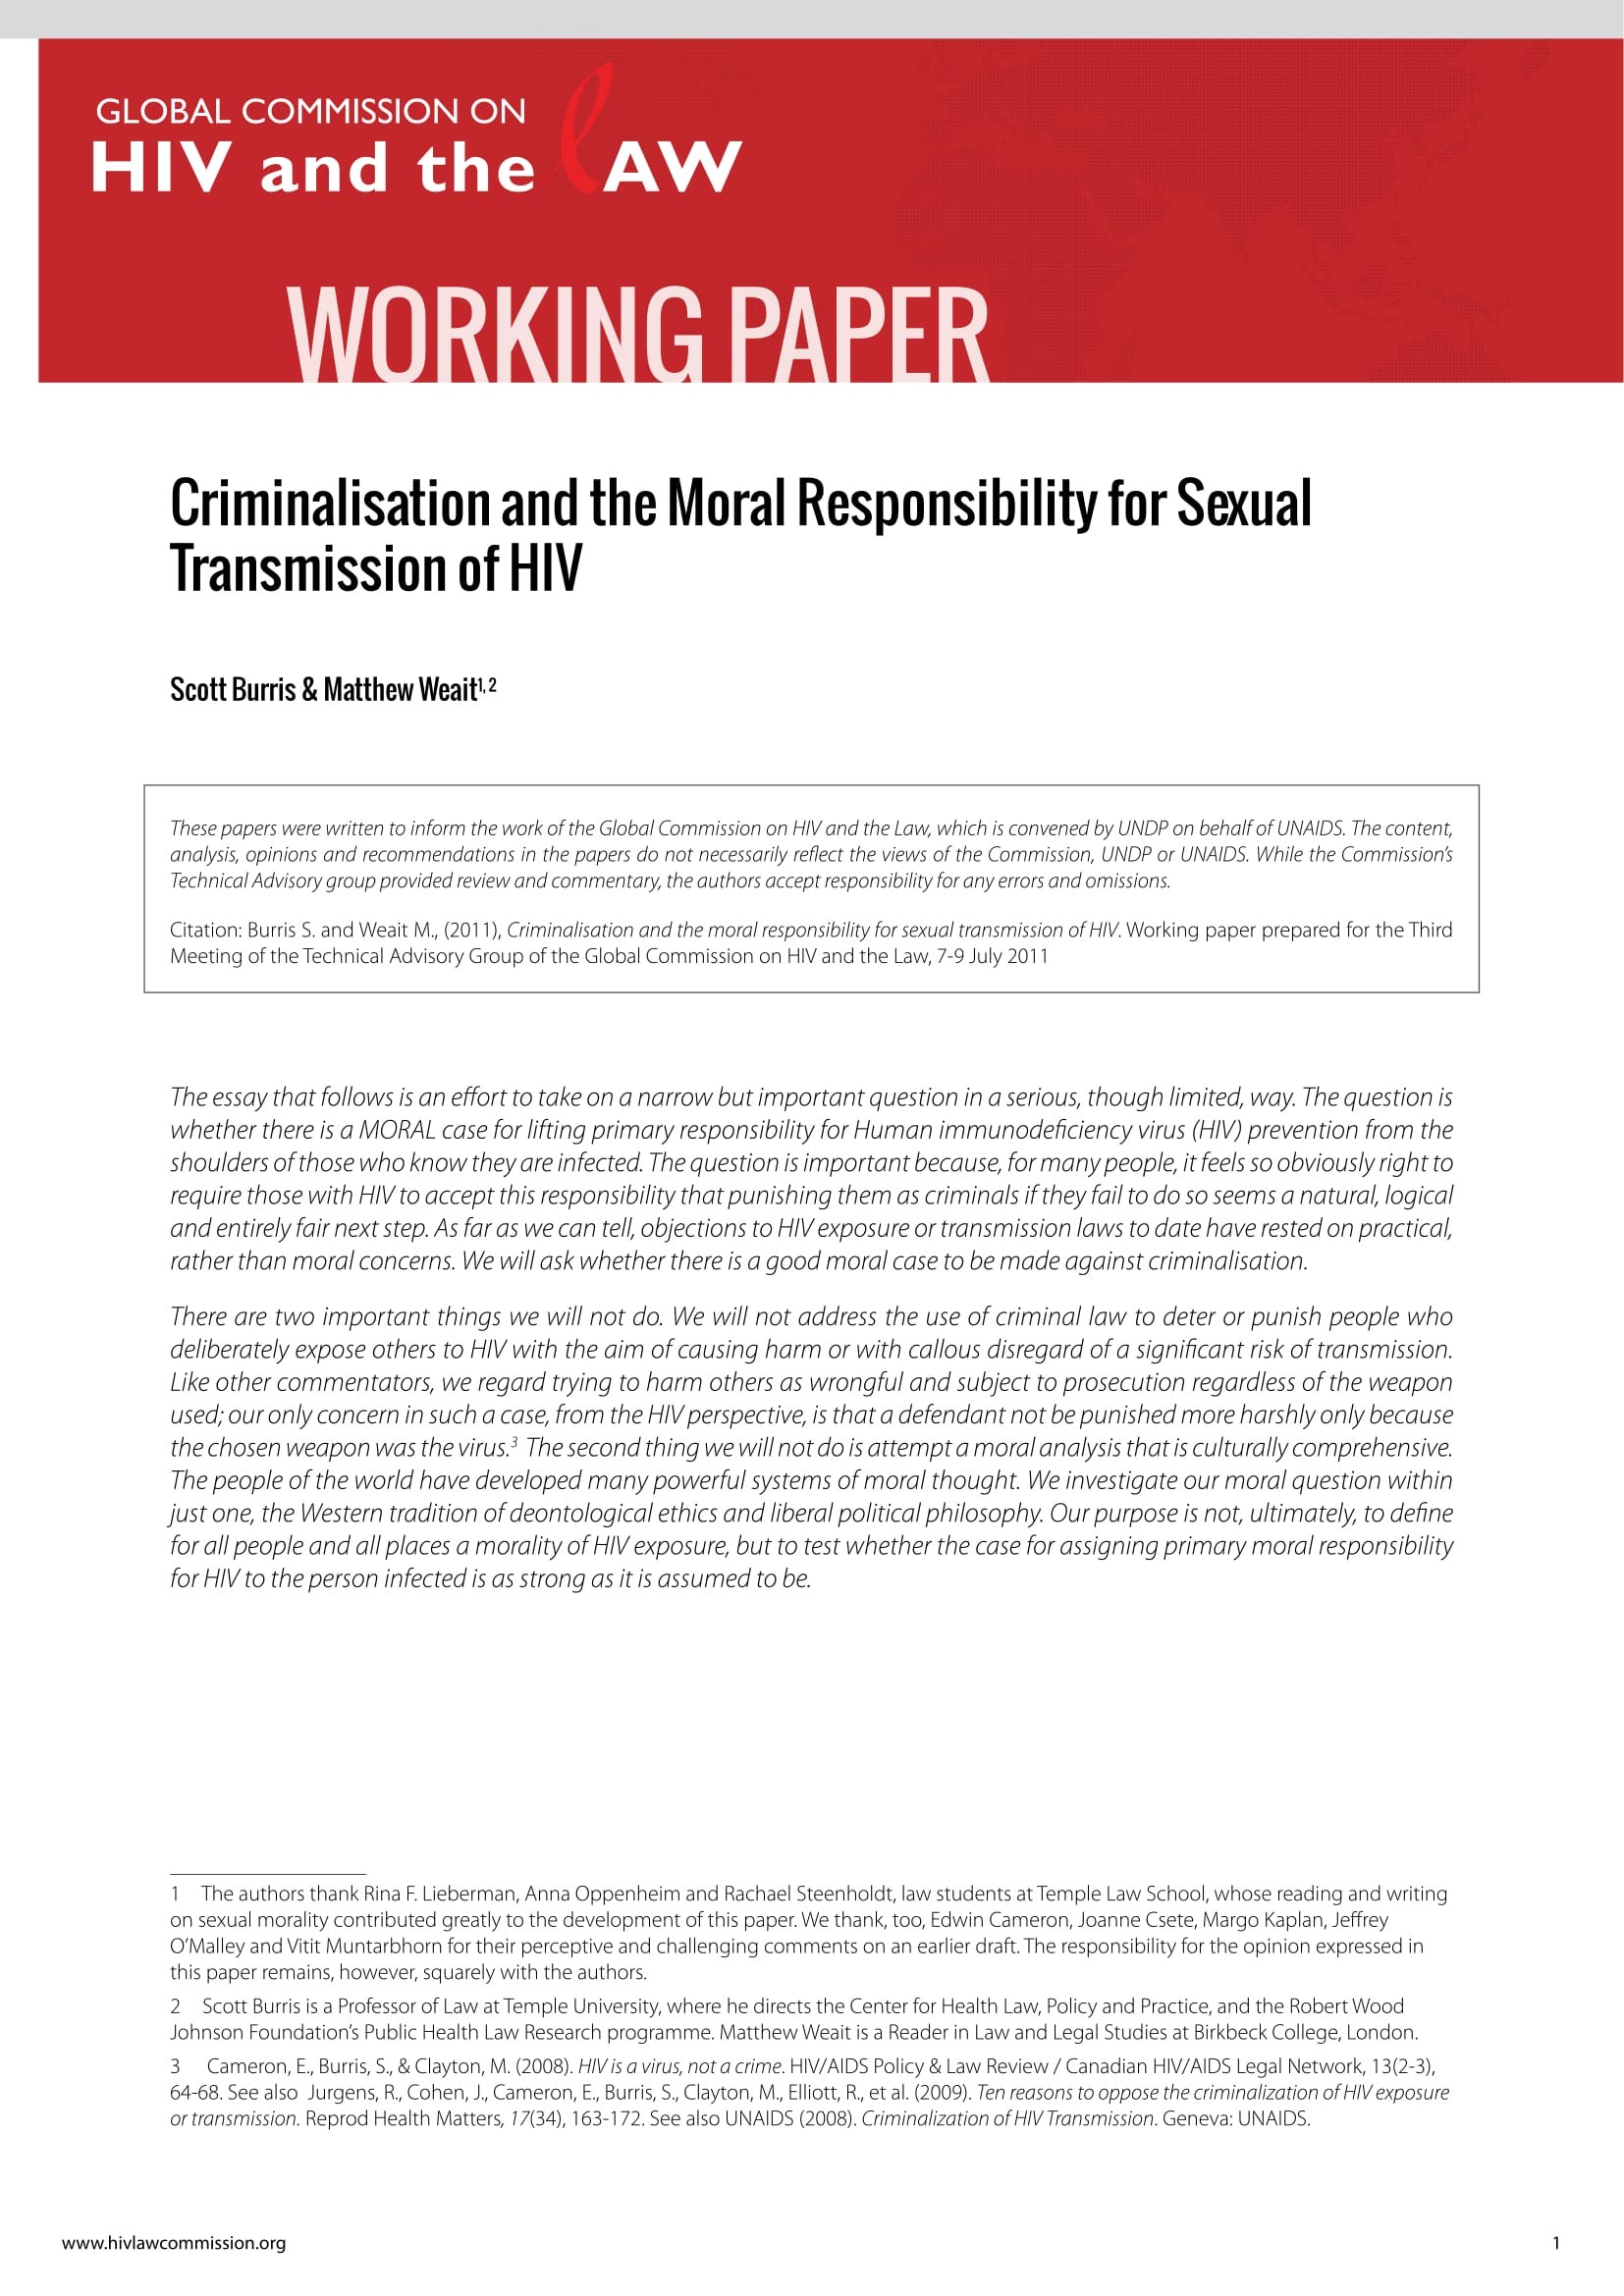 Criminalisation and the Moral Responsibility for Sexual Transmission of HIV